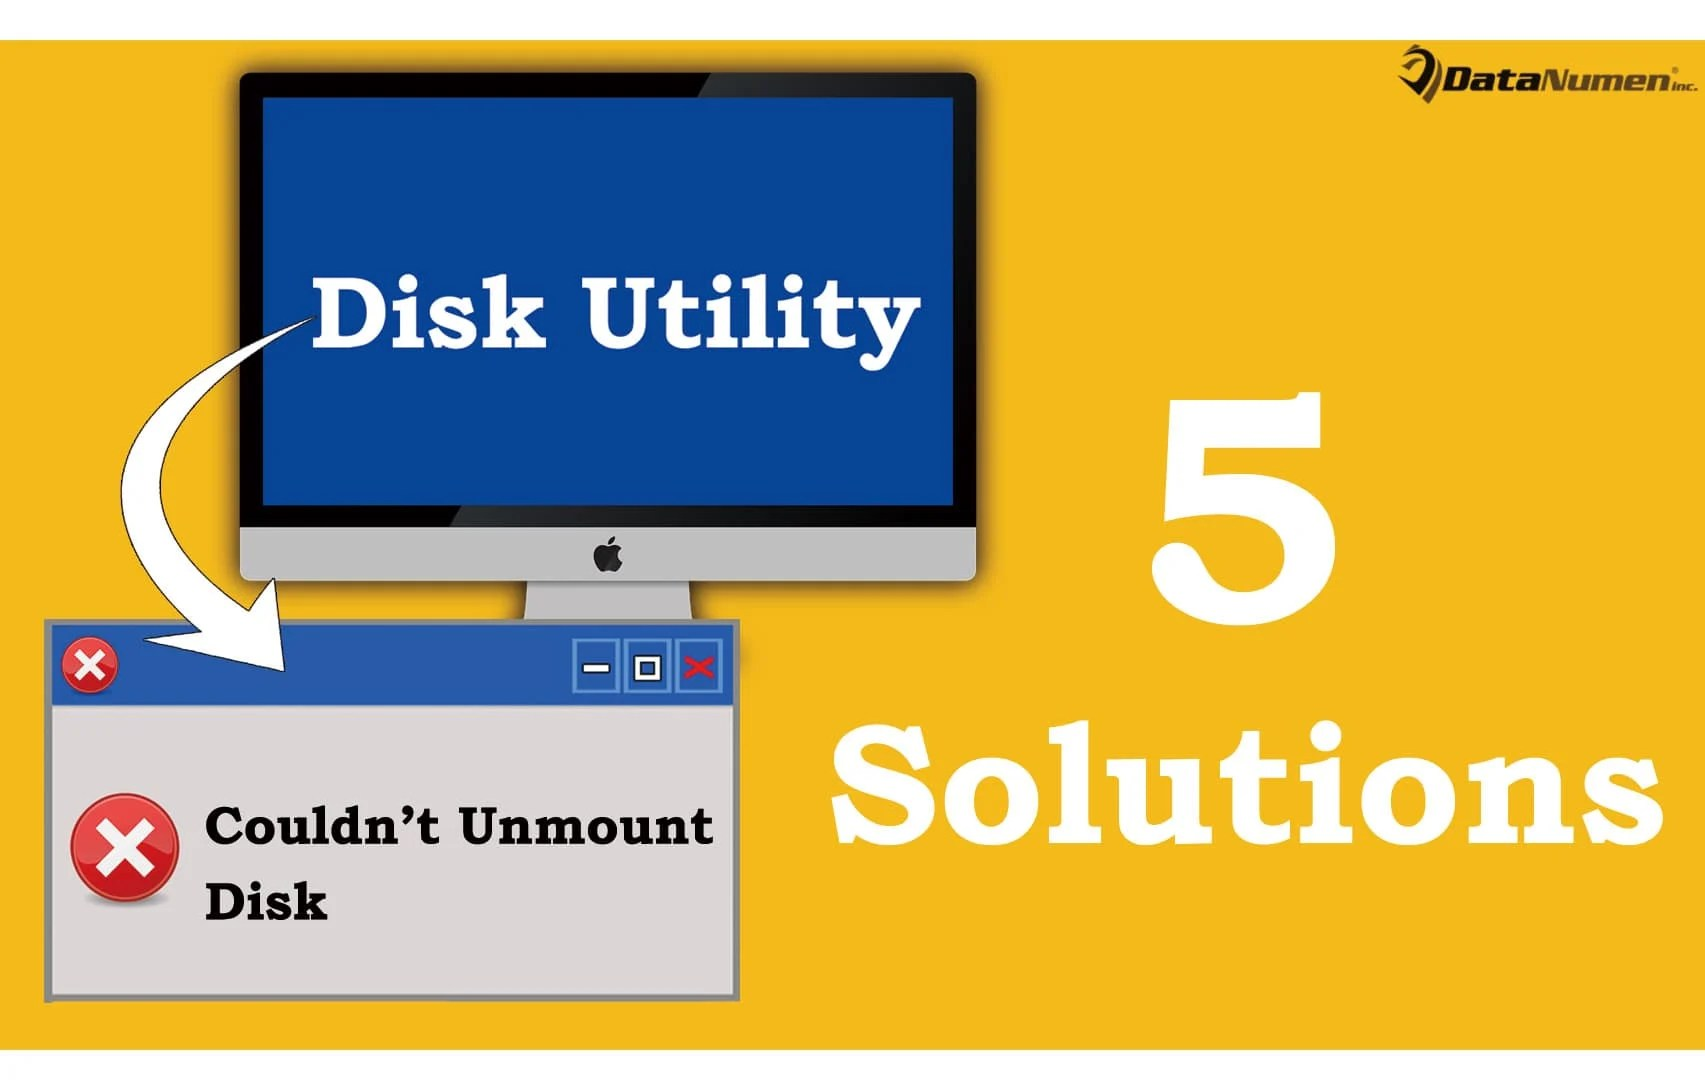 """5 Solutions to """"Couldn't Unmount Disk"""" Error when Using Disk Utility on Mac"""